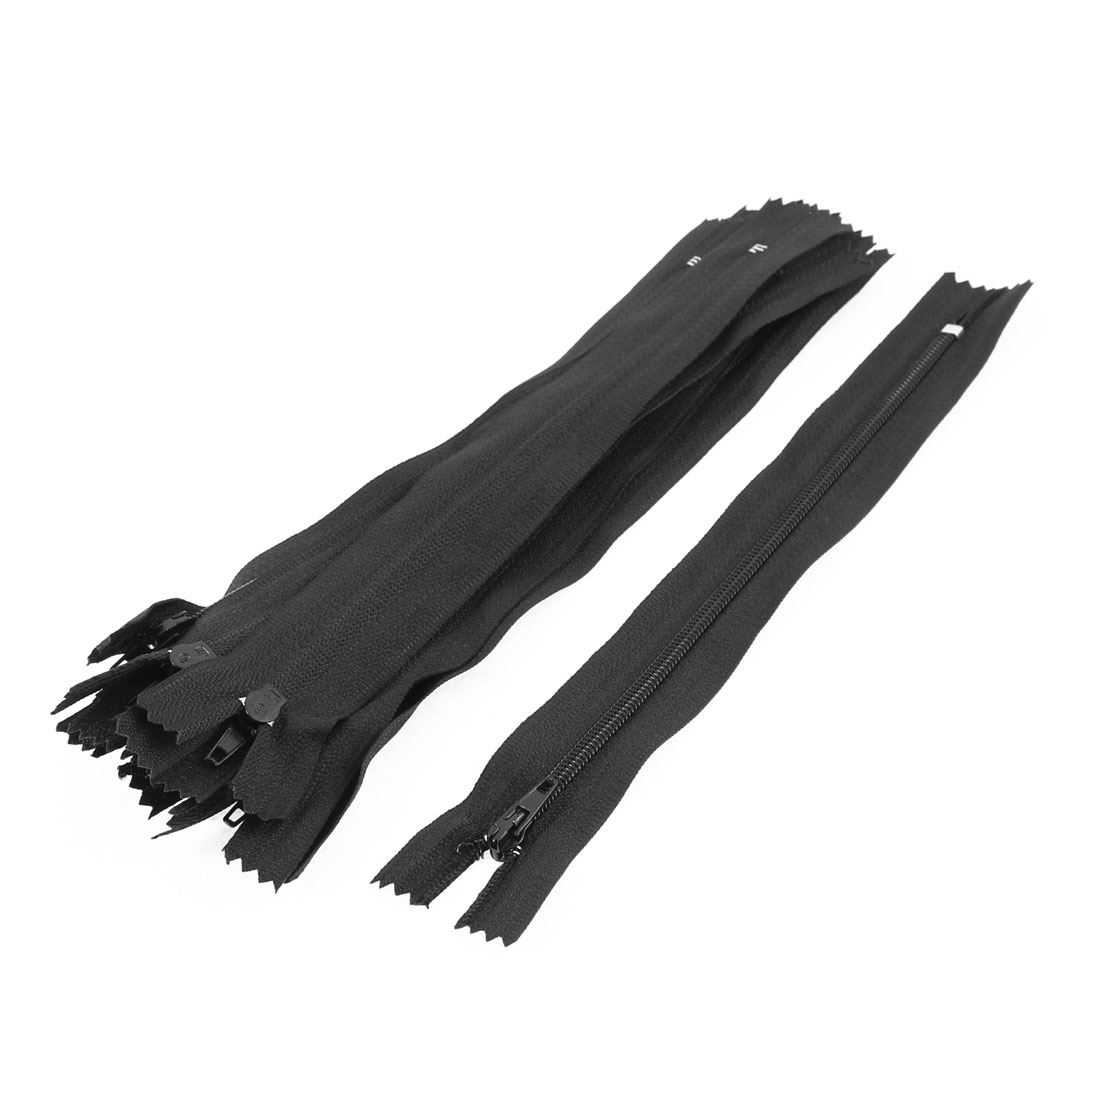 Dress Pants Closed End Nylon Zippers Tailor Sewing Craft Tool Black 18cm 10 Pcs